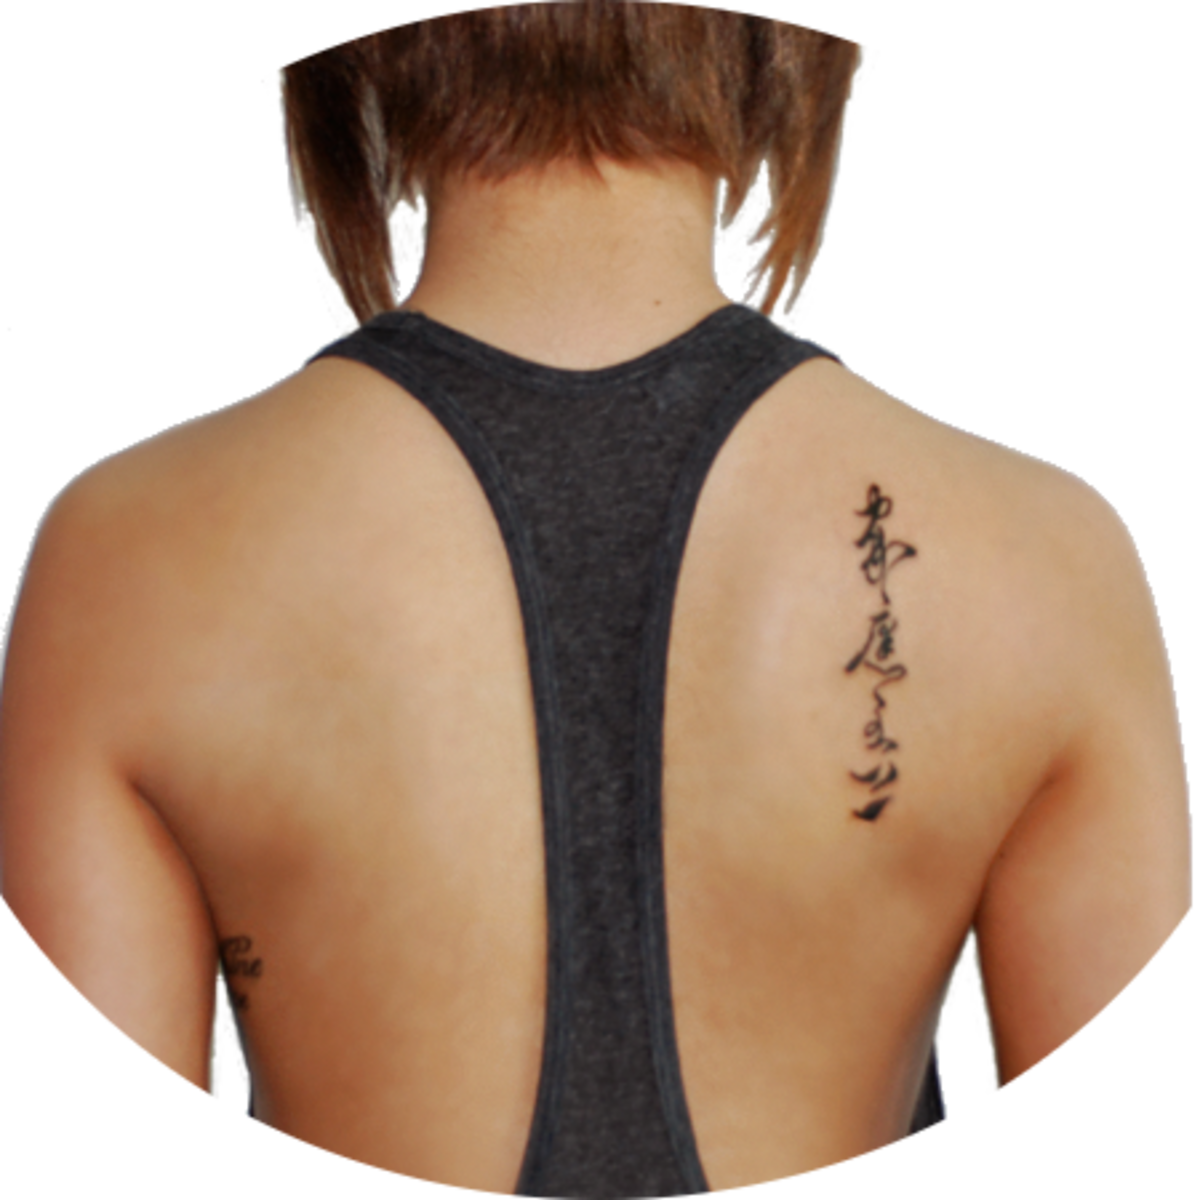 chinese tattoo meanings short phrases sayings awesome words